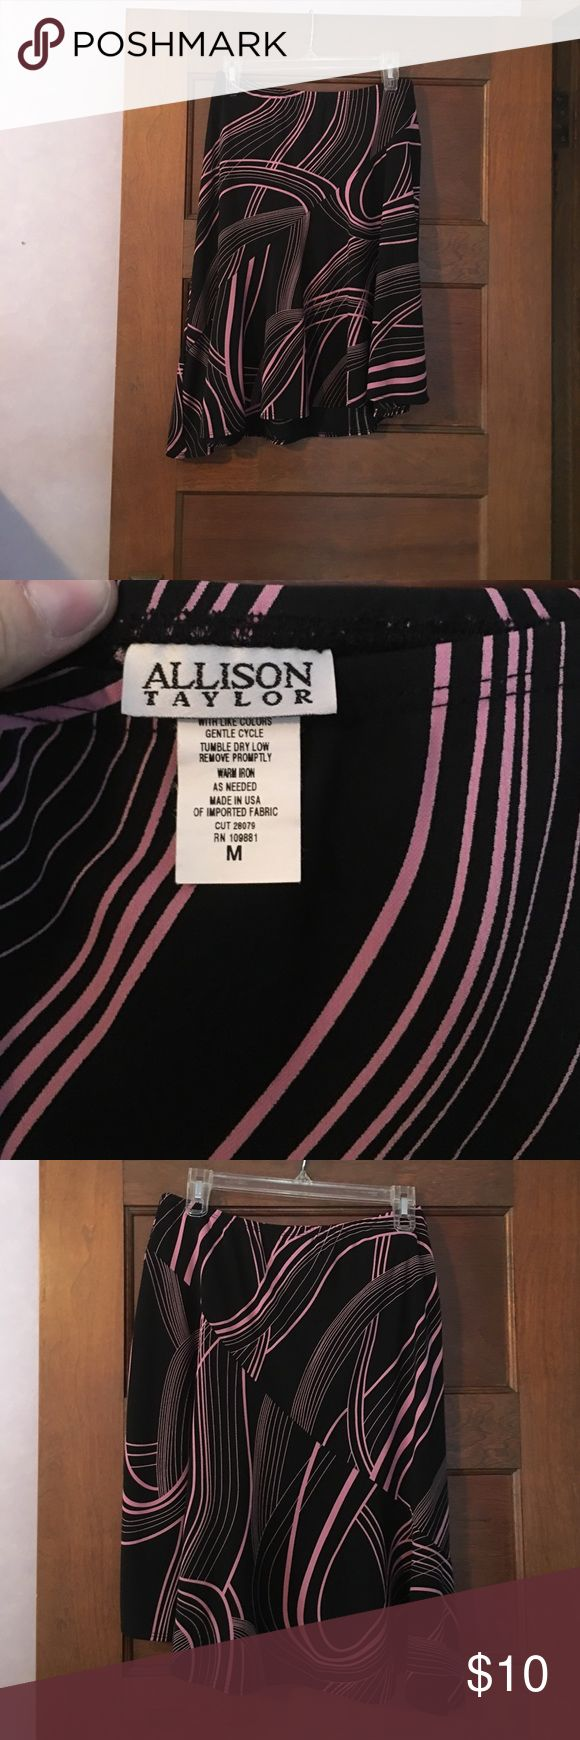 Women's stretch skirt. Size medium. Women's skirt. Stretchy. Size medium. Black and light pink. Asymmetrical. (First pic is front, last pic is back) Allison Taylor Skirts Asymmetrical